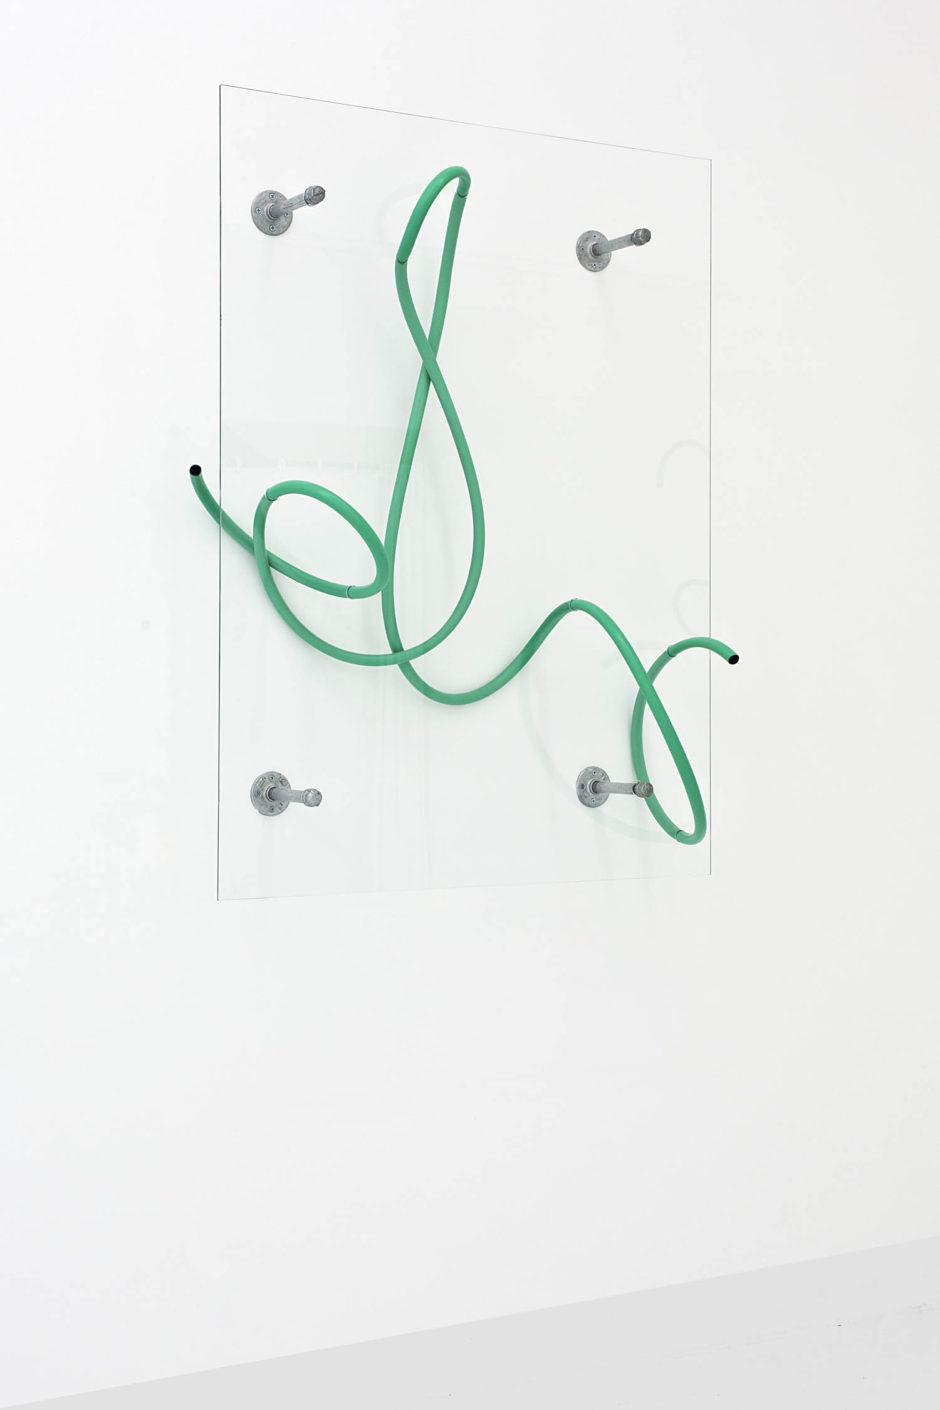 """Mary"", 2015, hose, starphire glass, steel, hardware, 53 x 40 x 12 inches, 134.6 x 101.6 x 30.5 cm"